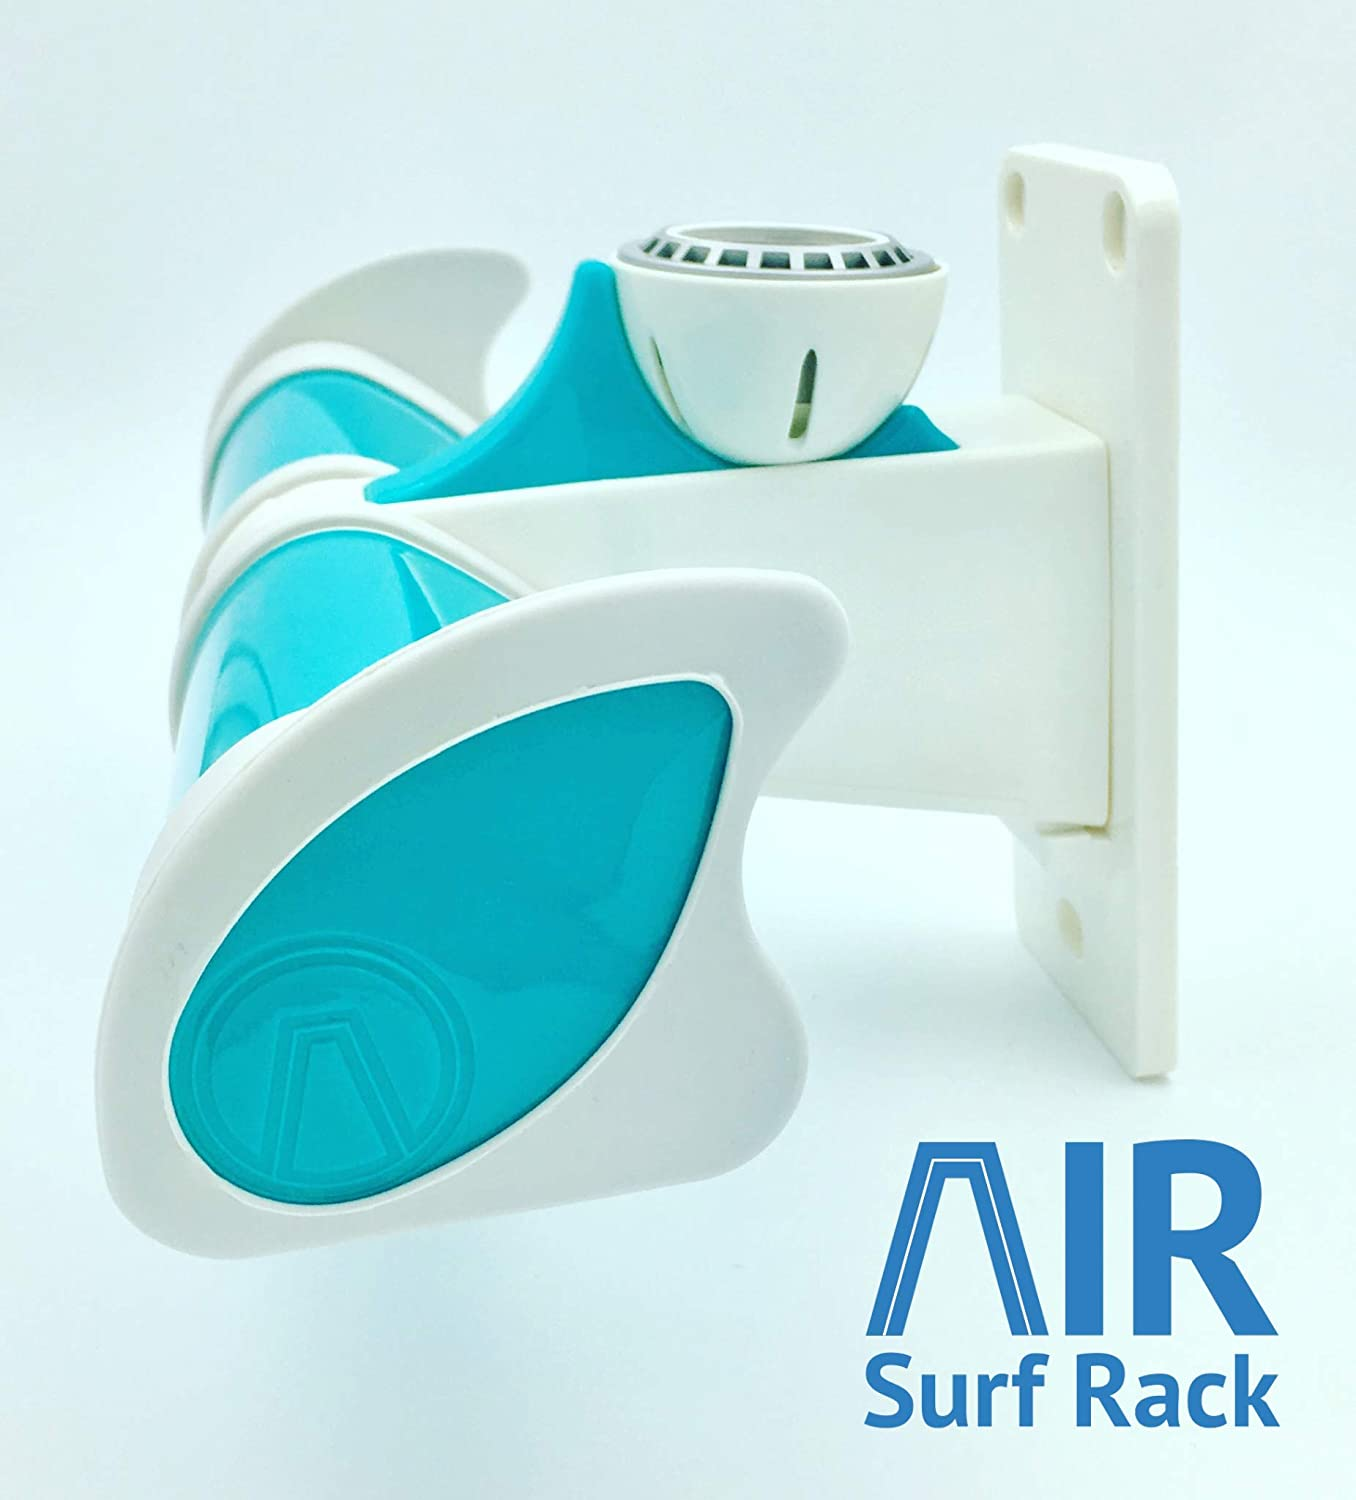 Amazon.com: AIR Surf Rack IGNITED – El original bastidor de ...